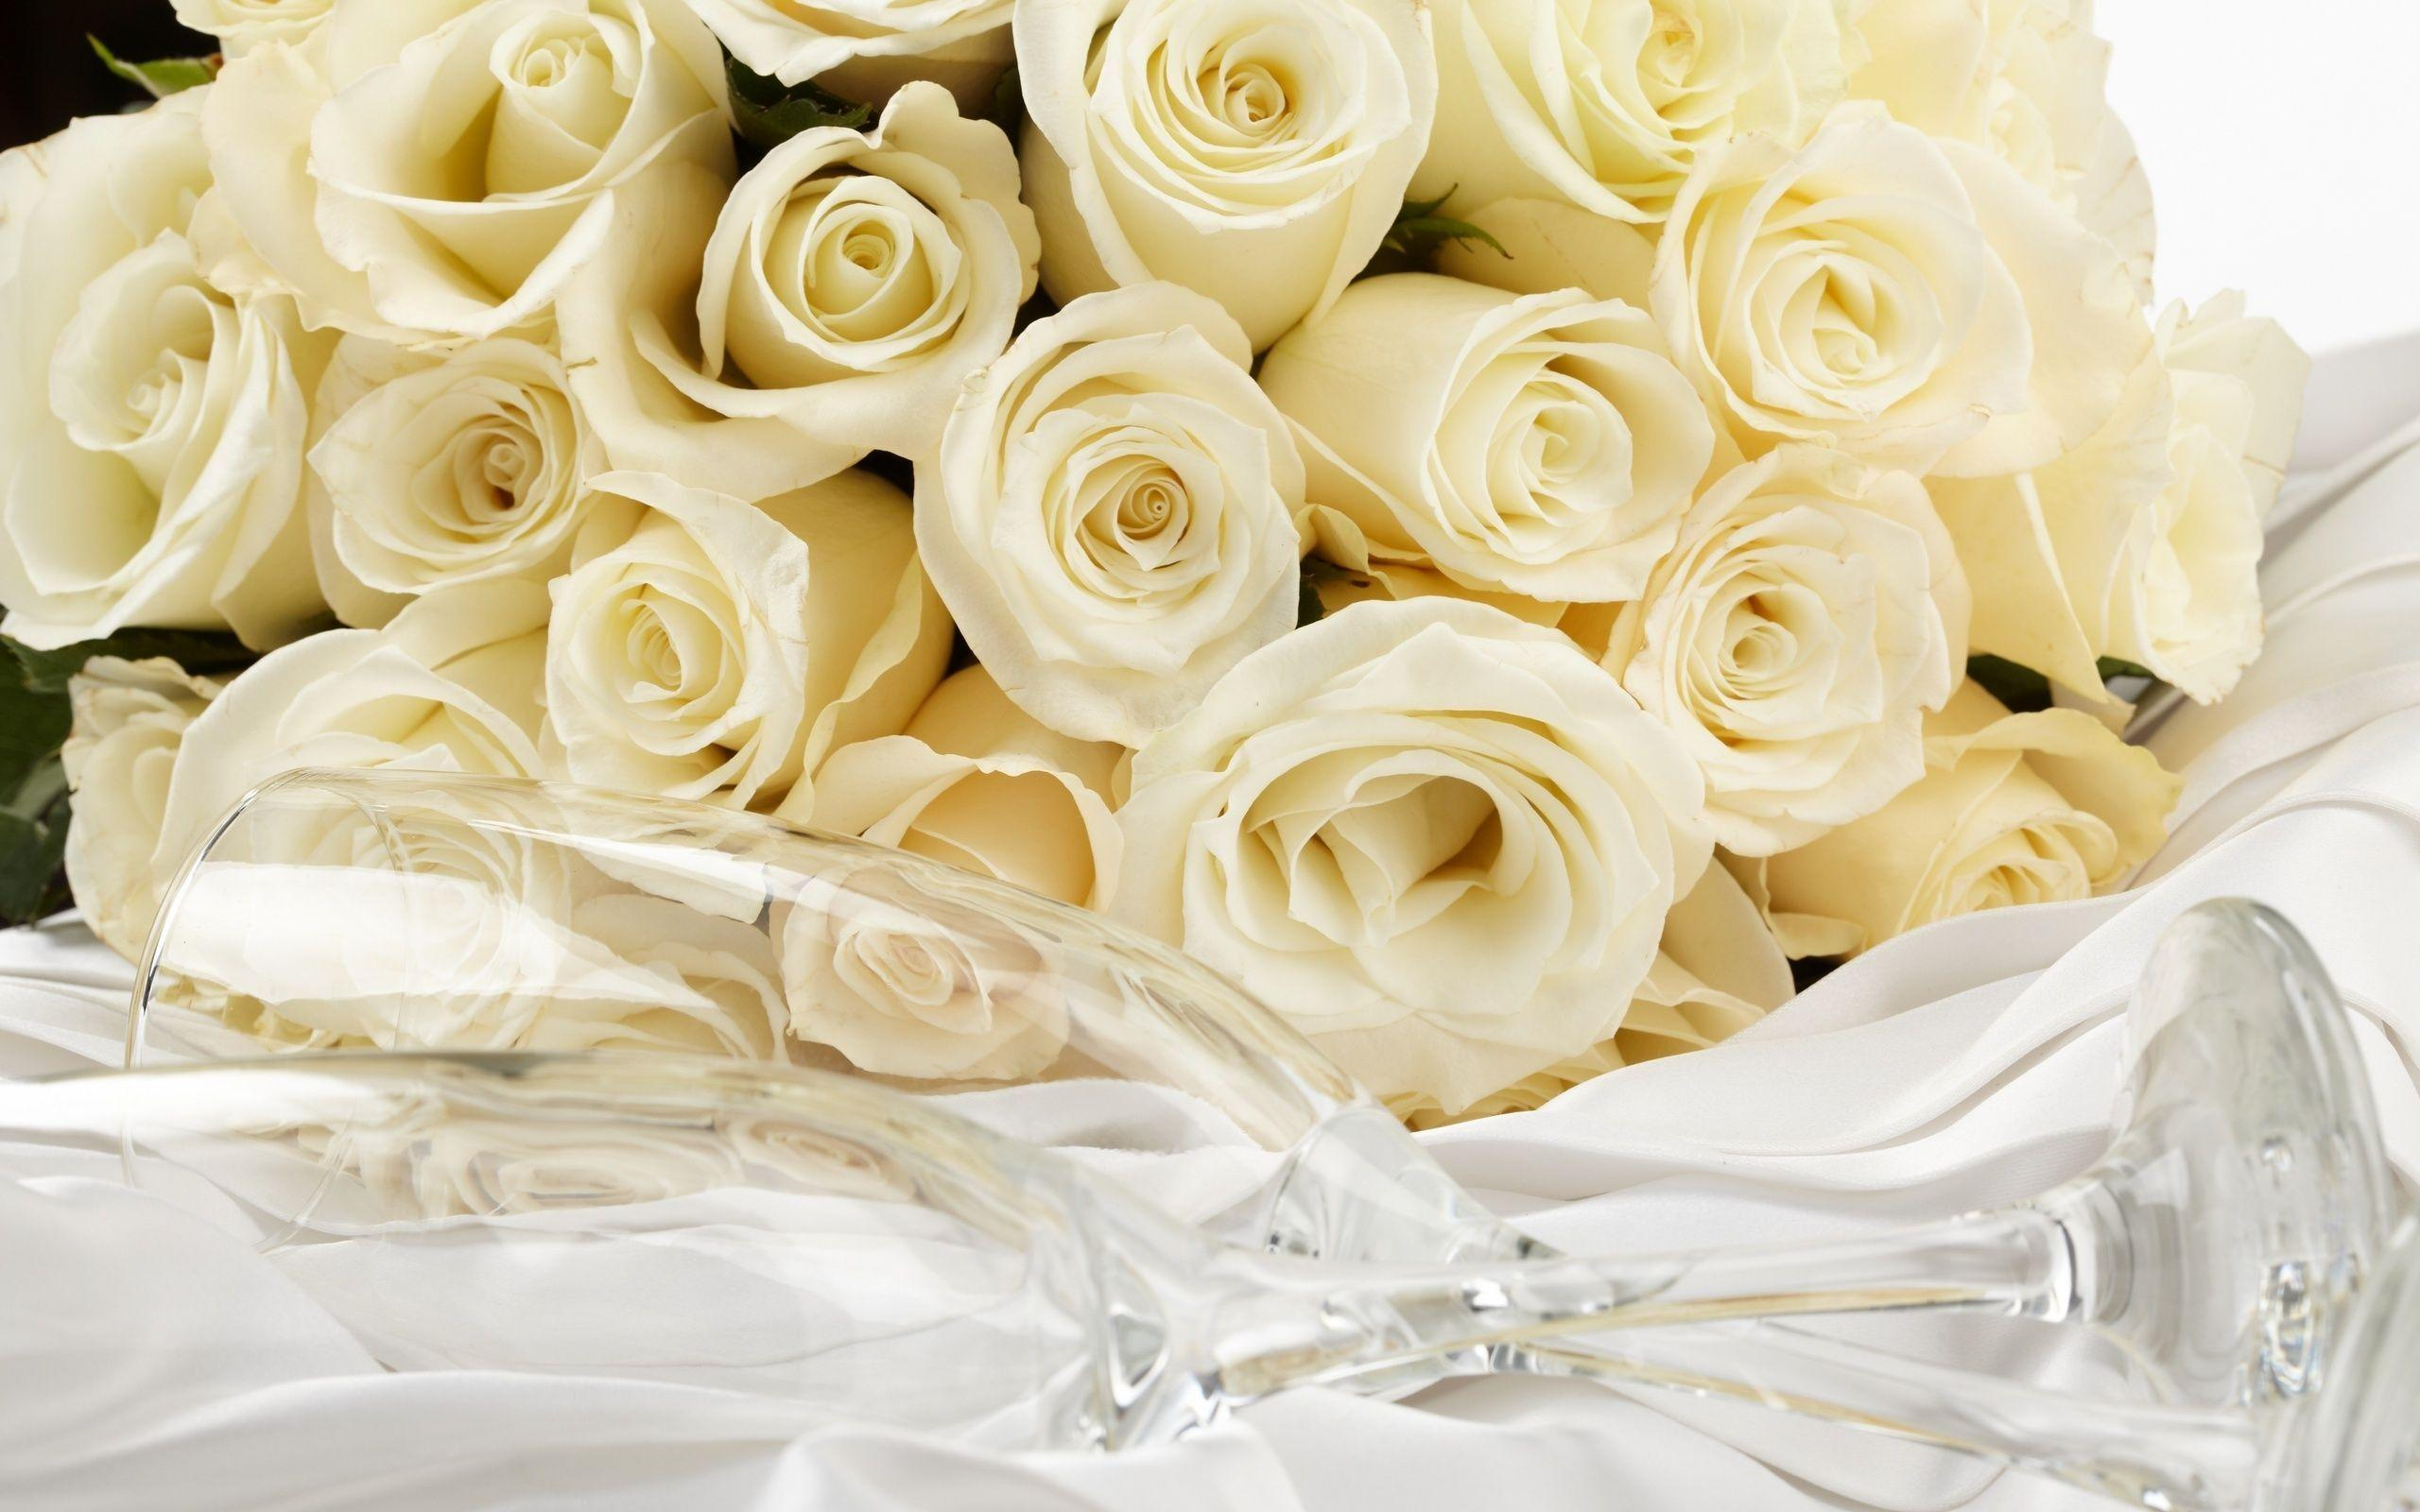 White Roses Backgrounds Tumblr Hd Image 3 HD Wallpapers